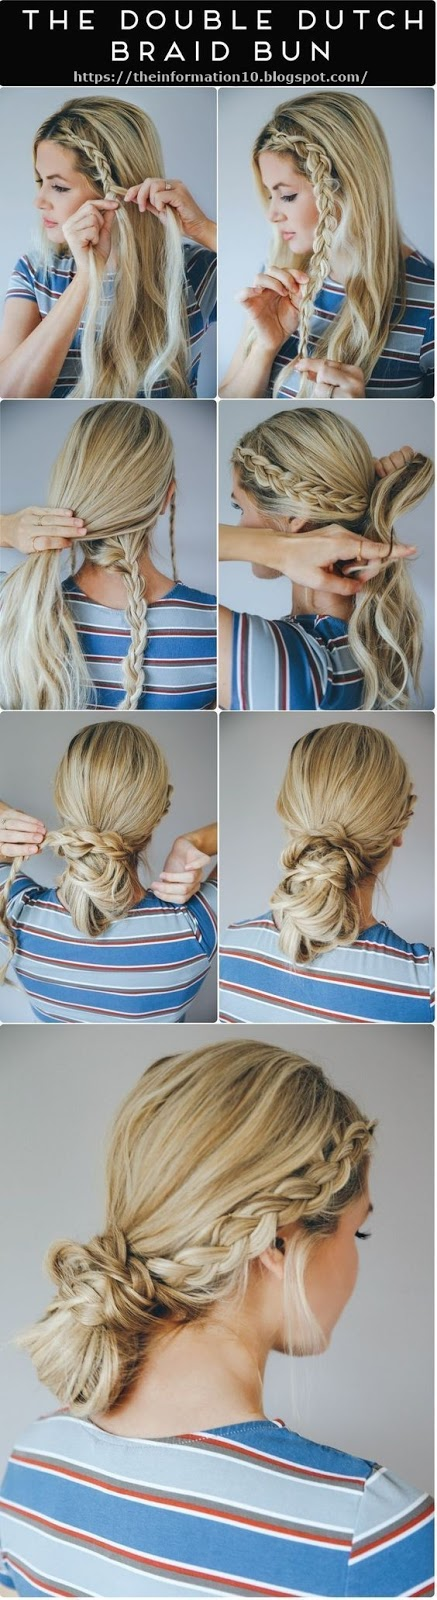 8 Easy Braids That Will Fix Any Bad Hair Day